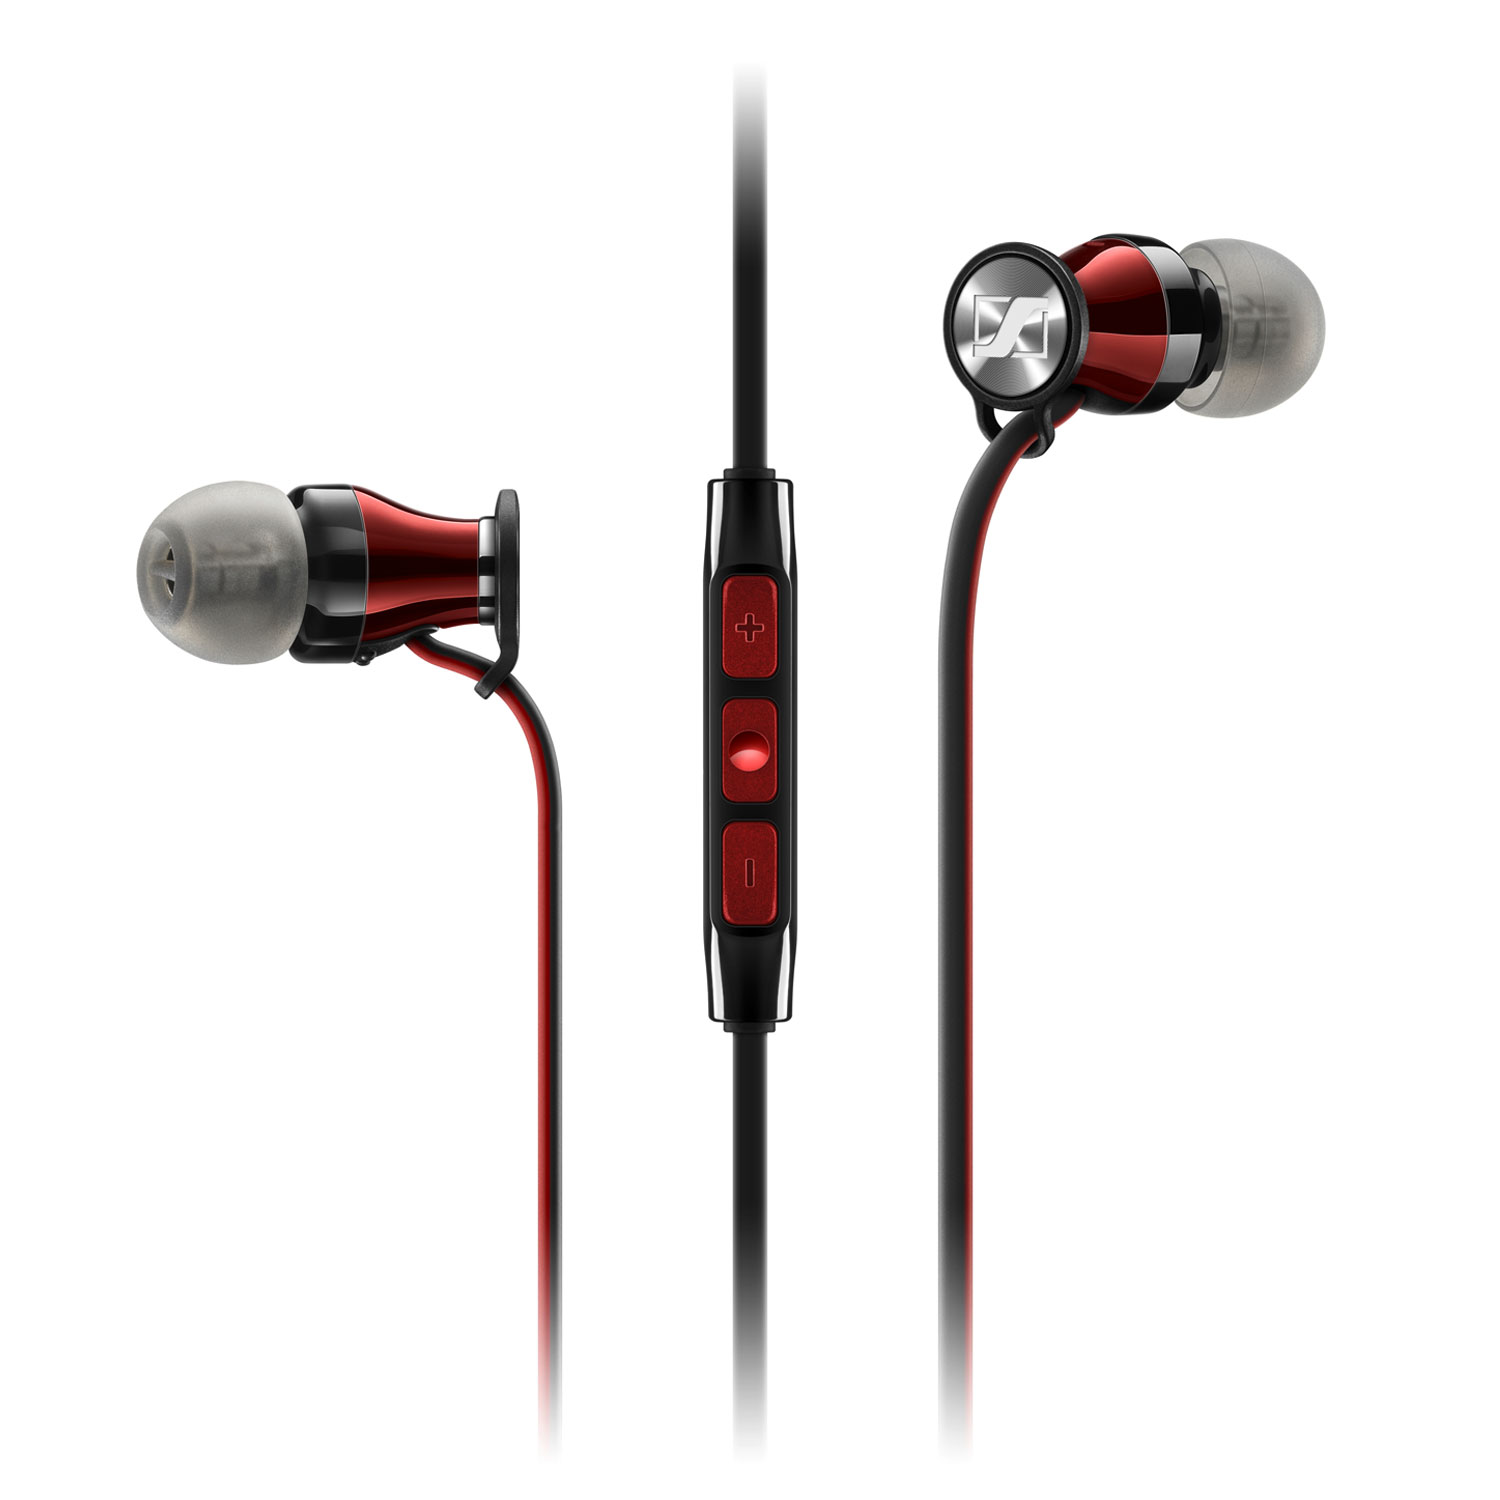 Casque Sennheiser Momentum In-ear i Noir Ecouteurs intra-auriculaire - compatible avec iPhone/iPad/iPod